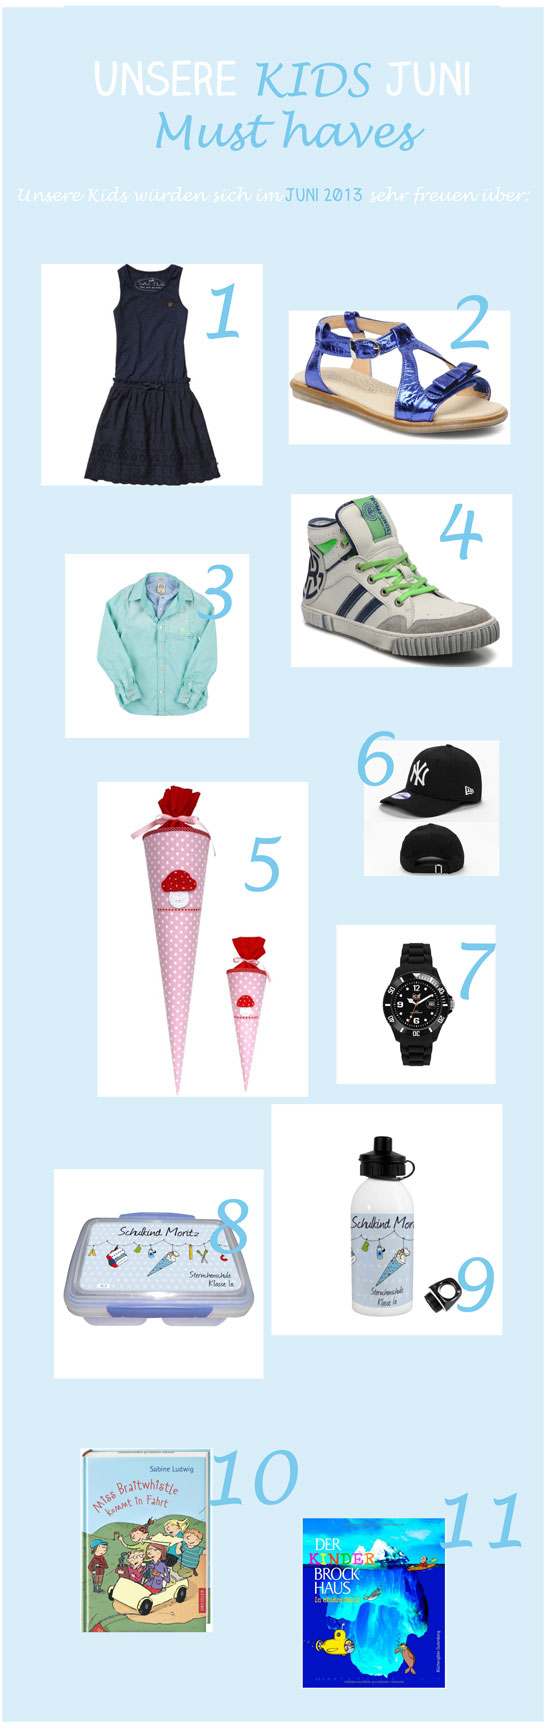 Must-haves-Juni-Kids